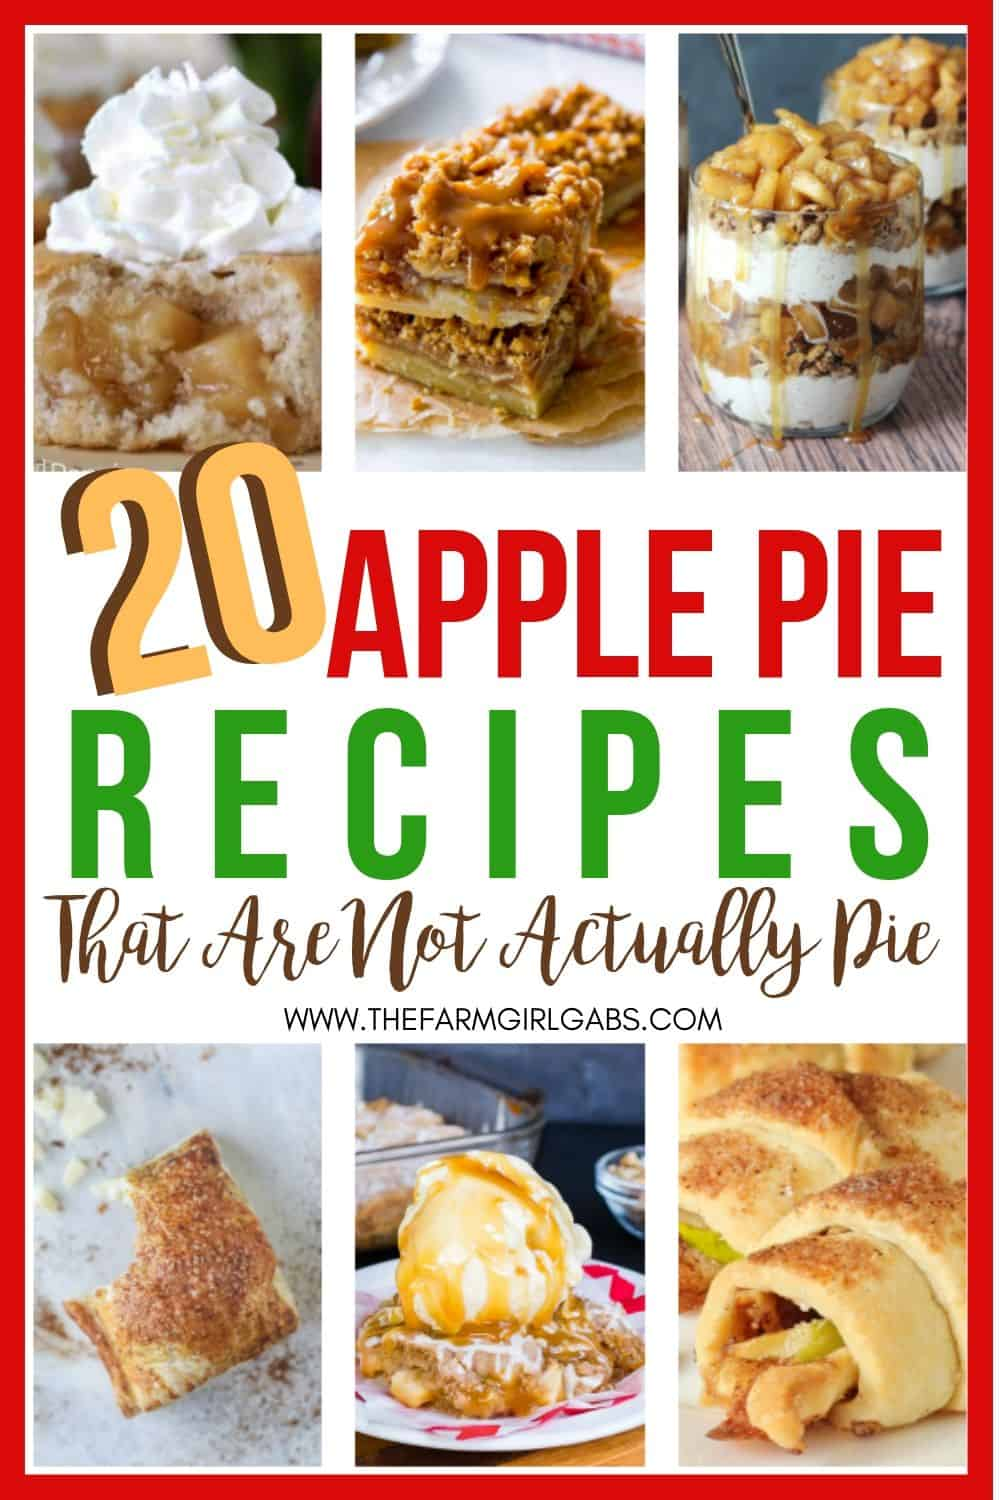 Celebrate fall's favorite fruit with these Apple Pie Desserts That Aren't Actually Pie. Try one of these delicious apple recipes instead of a traditional apple pie. #appledesserts #fallrecipe #applepie